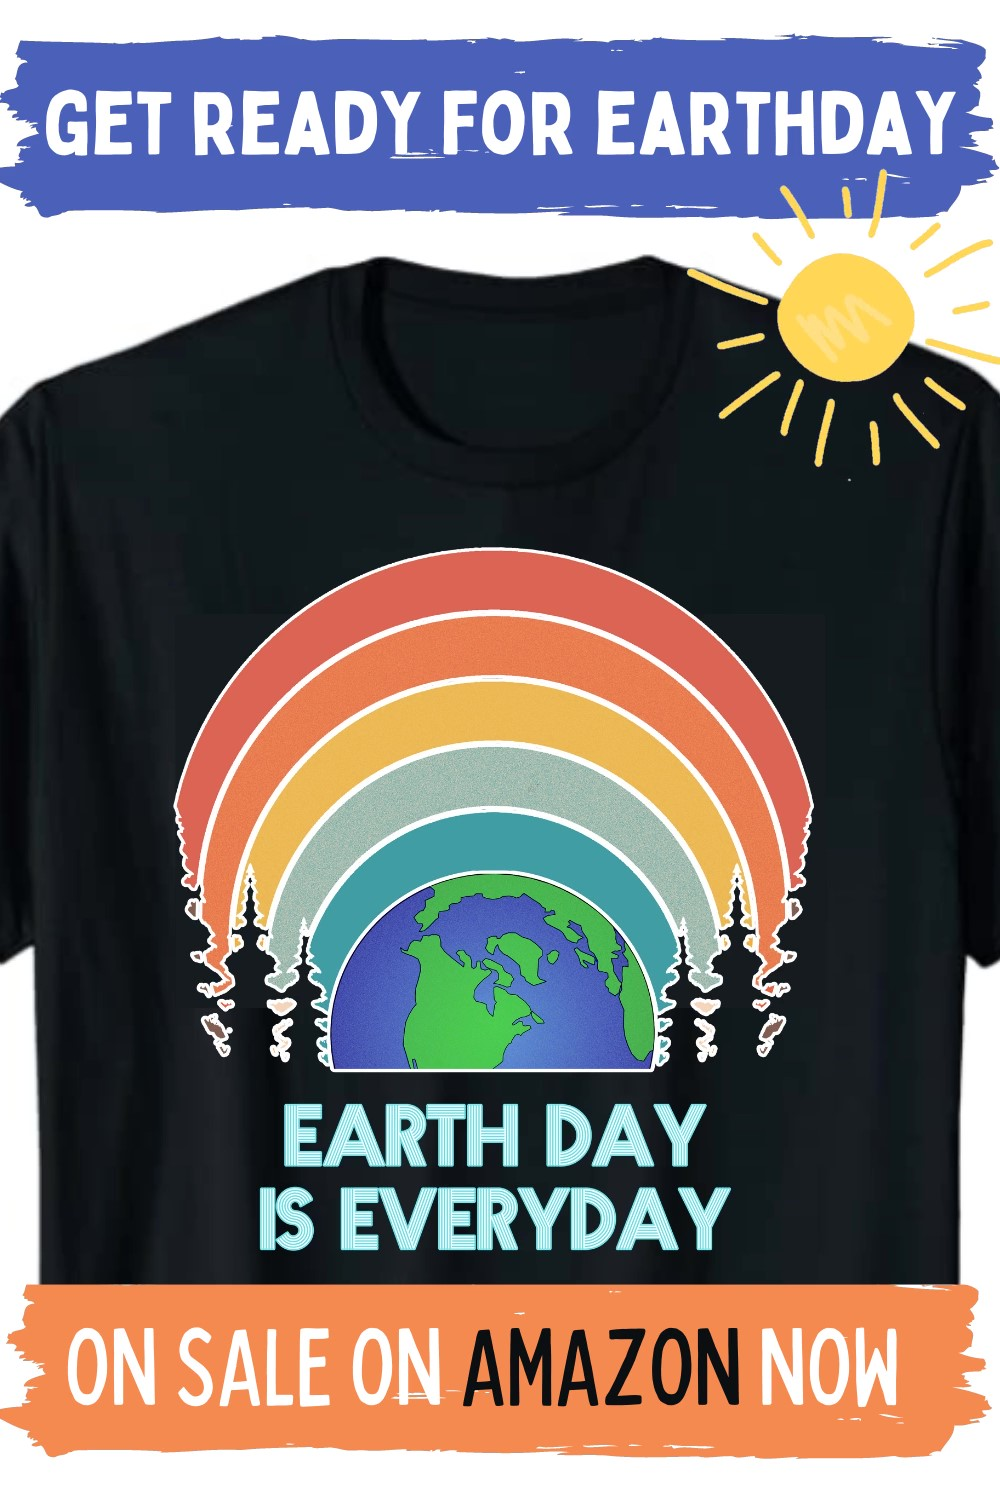 Earth-day-is-everyday shirt